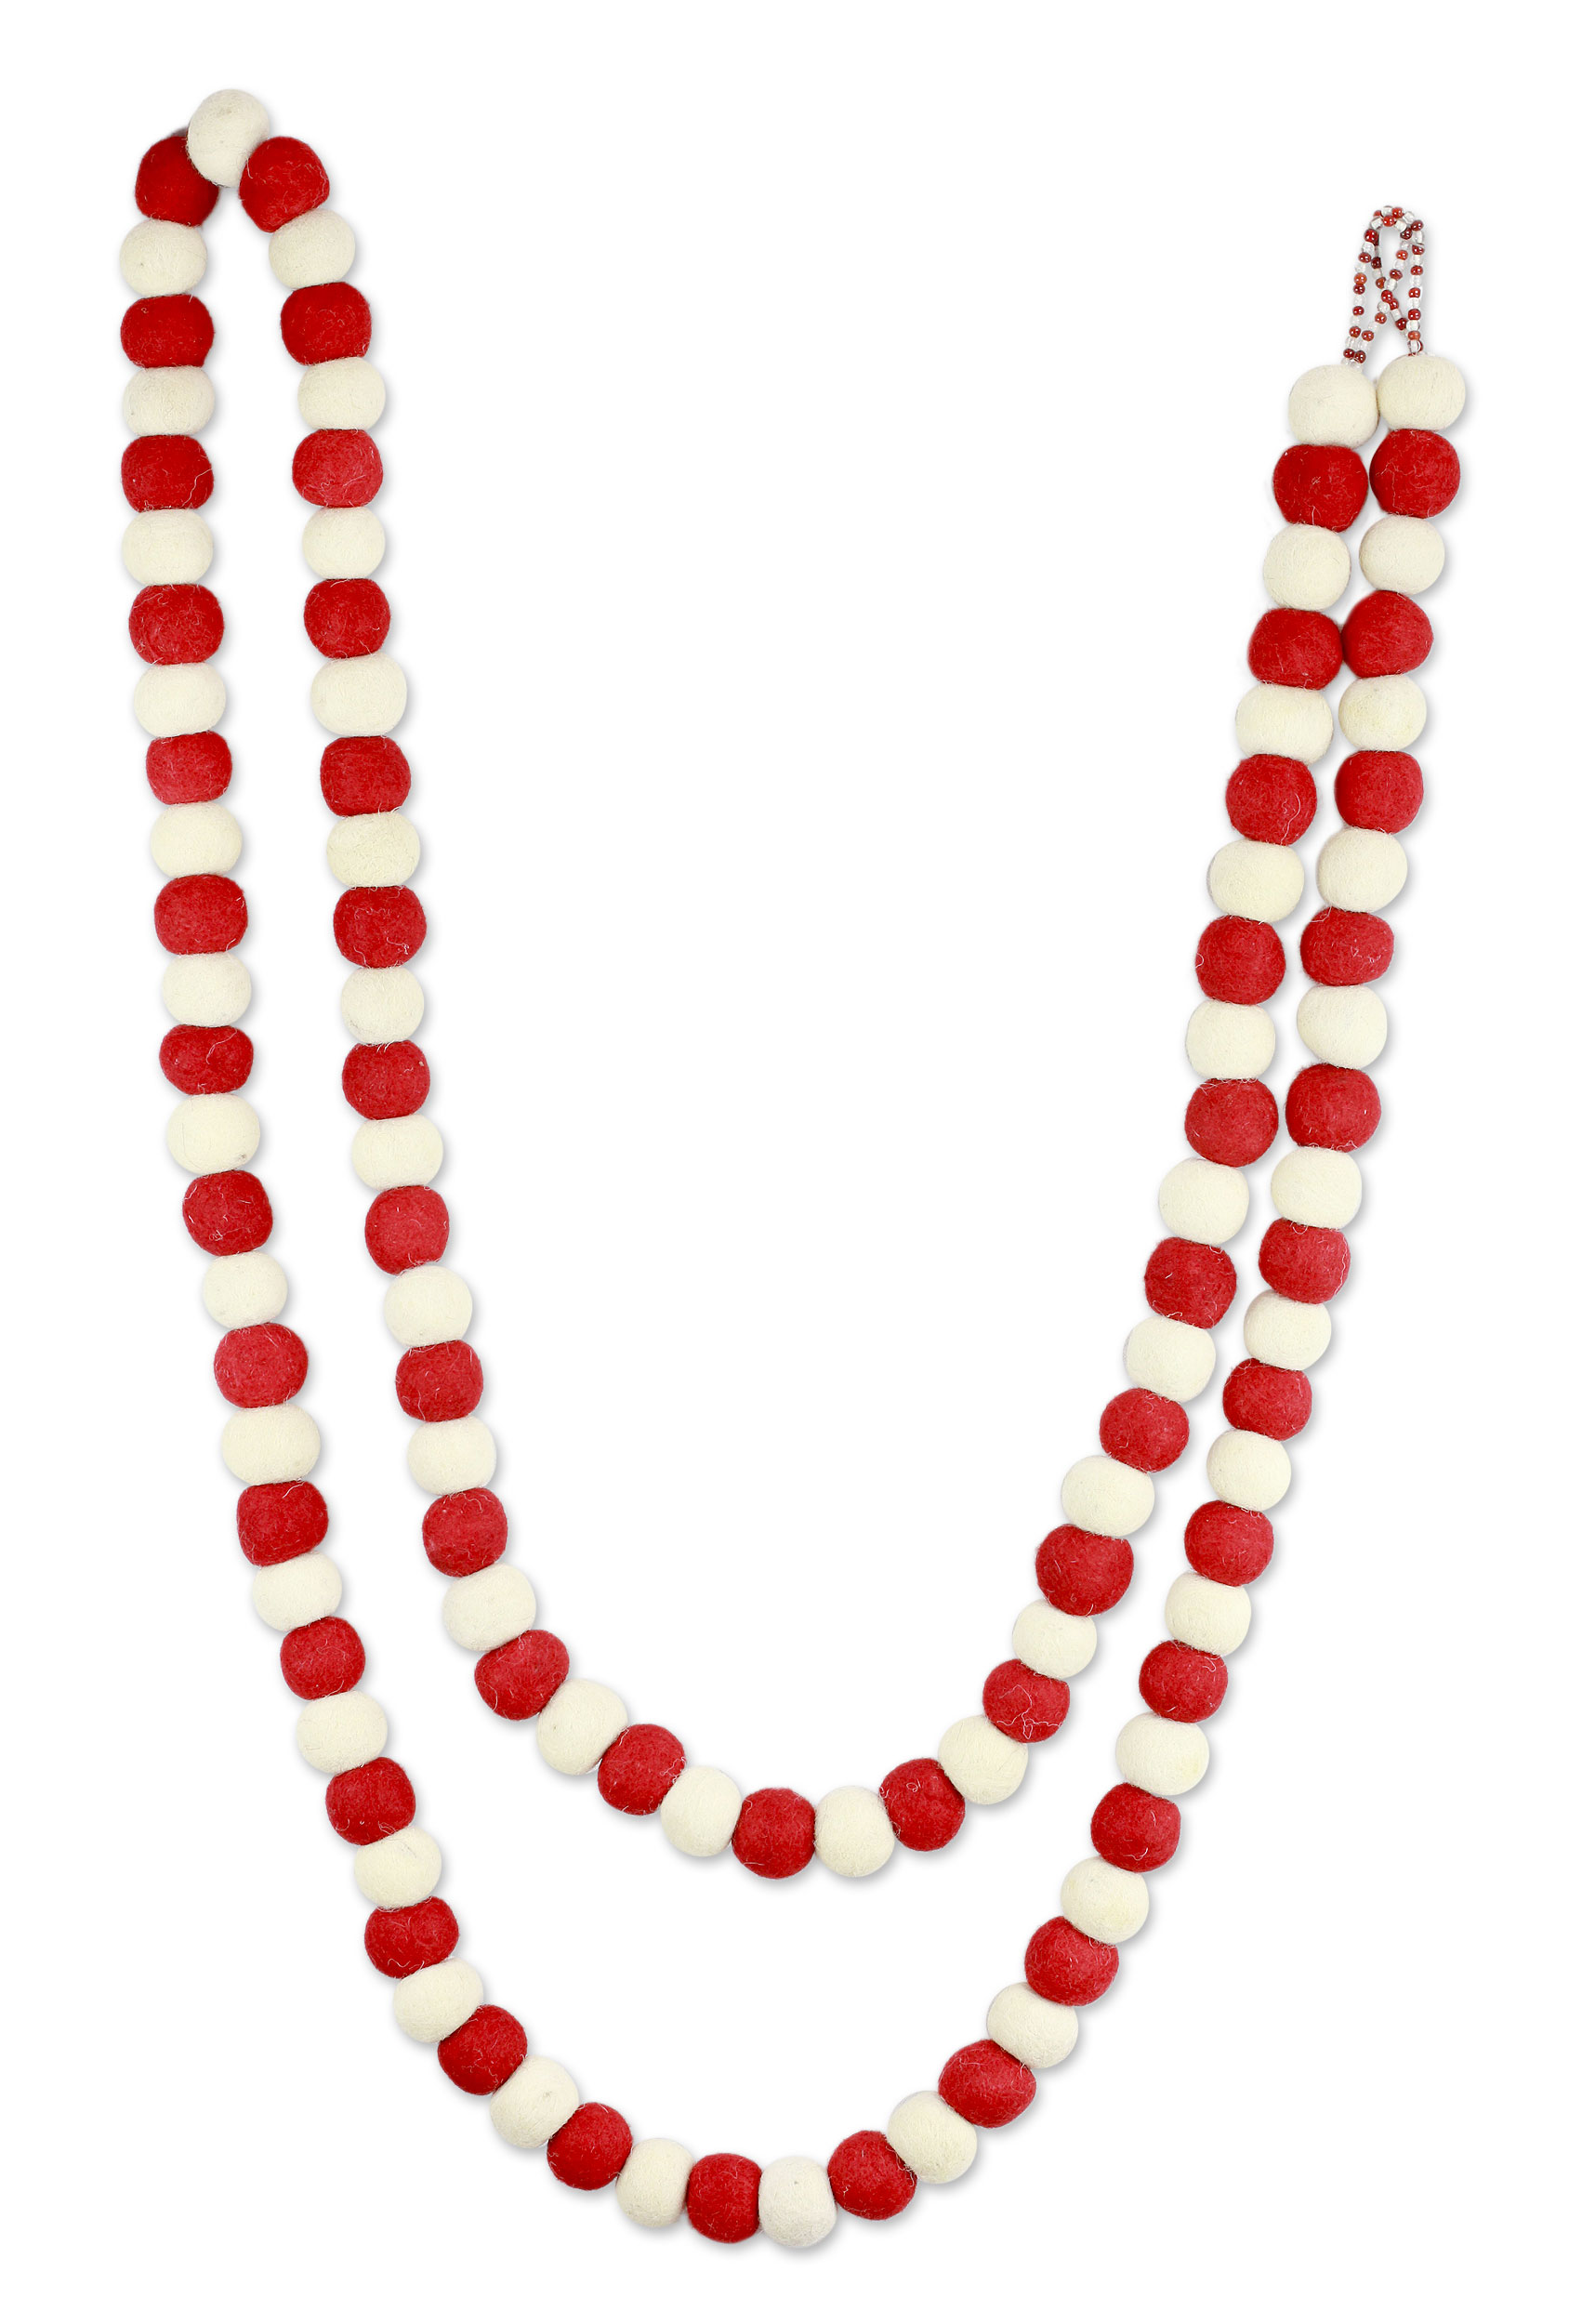 Candy Cane Pompoms Red and White Handmade Felt Holiday Garland Get Your Home Ready for the Holidays